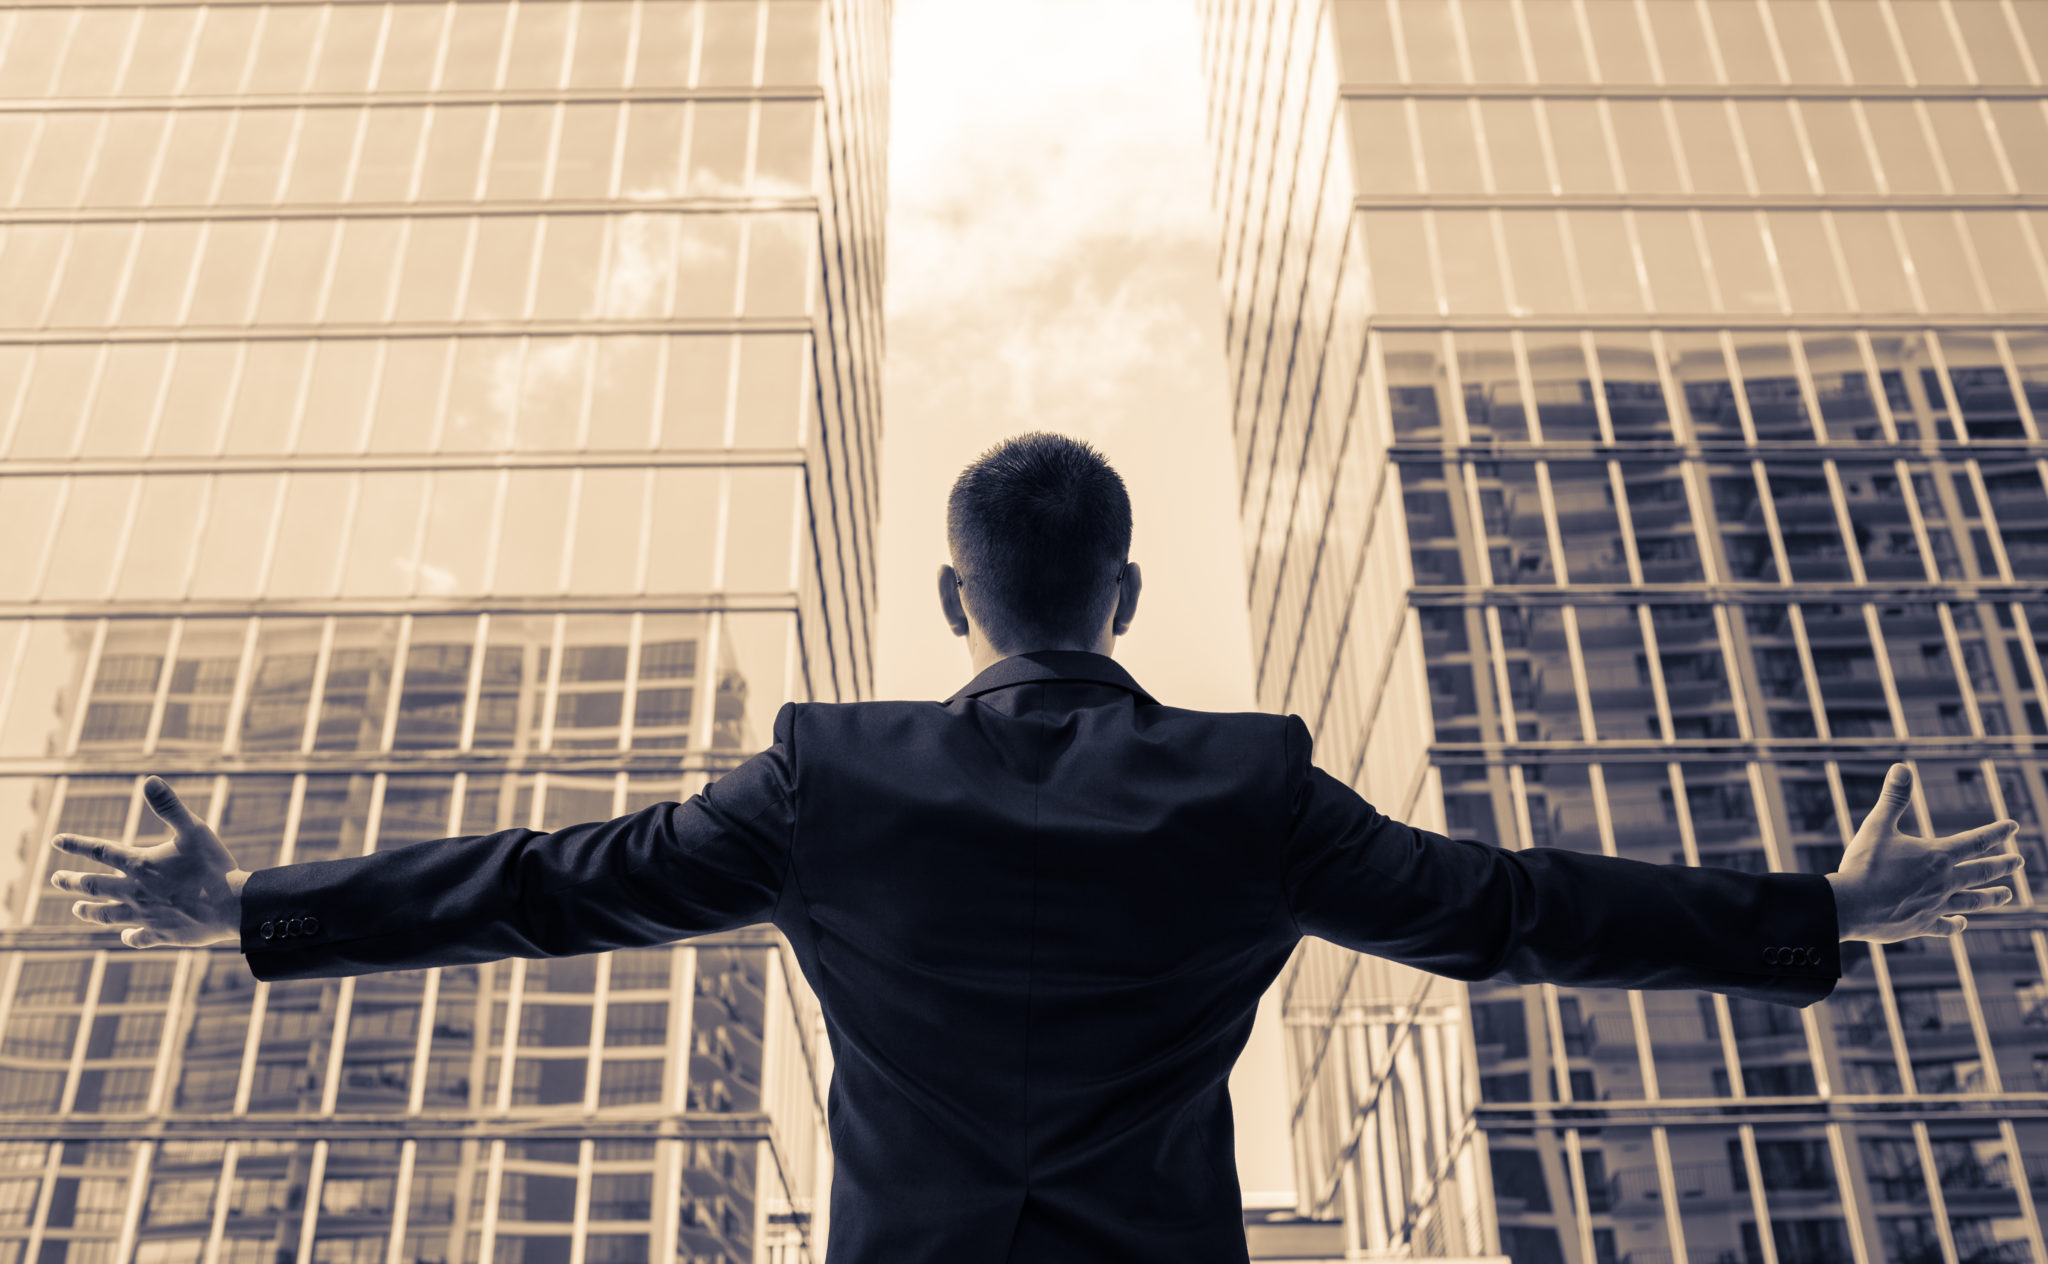 5 Challenges Facing Young Entrepreneurs (and How to Overcome Them)